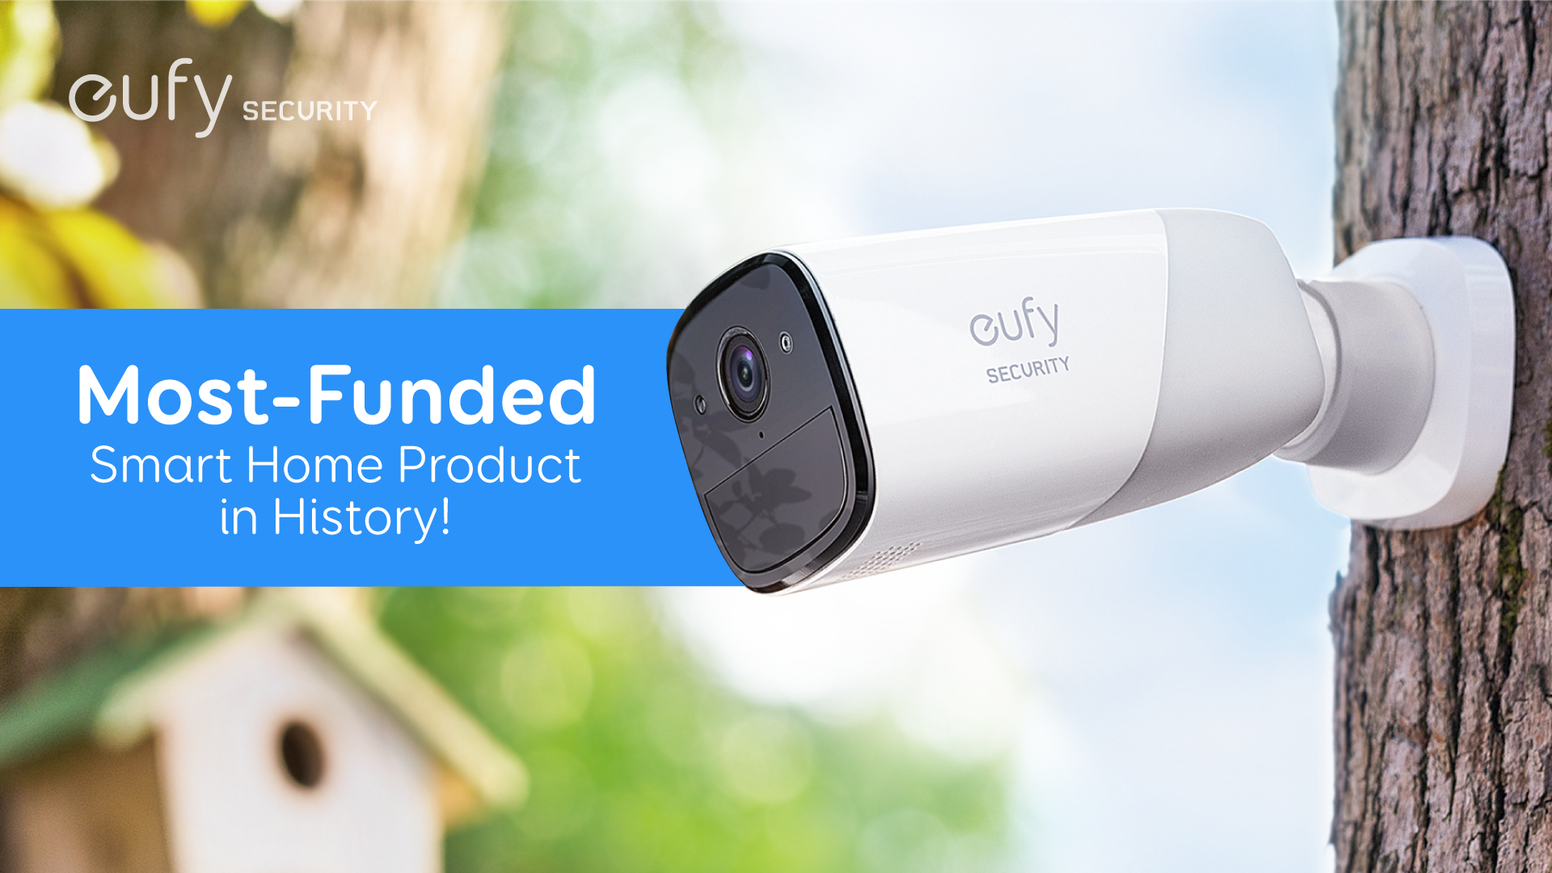 eufyCam: The Wirefree Security Cam with 365-Day Battery is the top crowdfunding project launched today. eufyCam: The Wirefree Security Cam with 365-Day Battery raised over $3139558 from 8803 backers. Other top projects include Village Pillage - a 30-minute game of risk and betrayal!, Pokemoth Enamel Pins (Canceled), Vite Ramen: The Nutritionally Complete Instant Ramen....